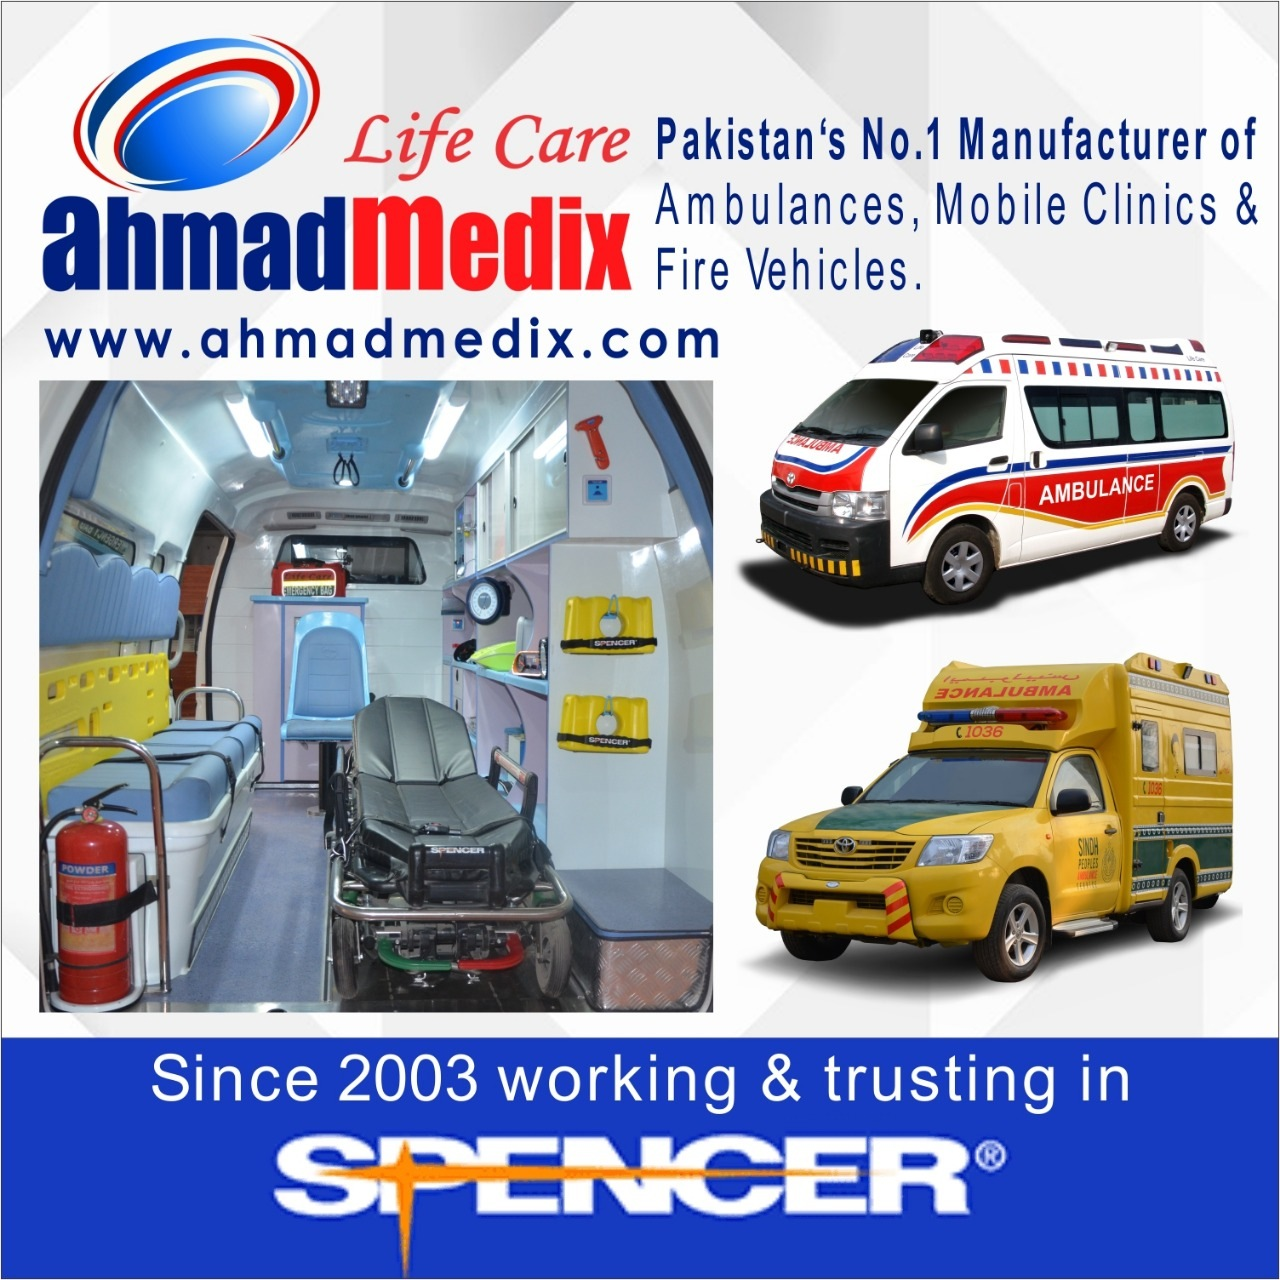 SPENCER PARTNER-AHMAD MEDIX